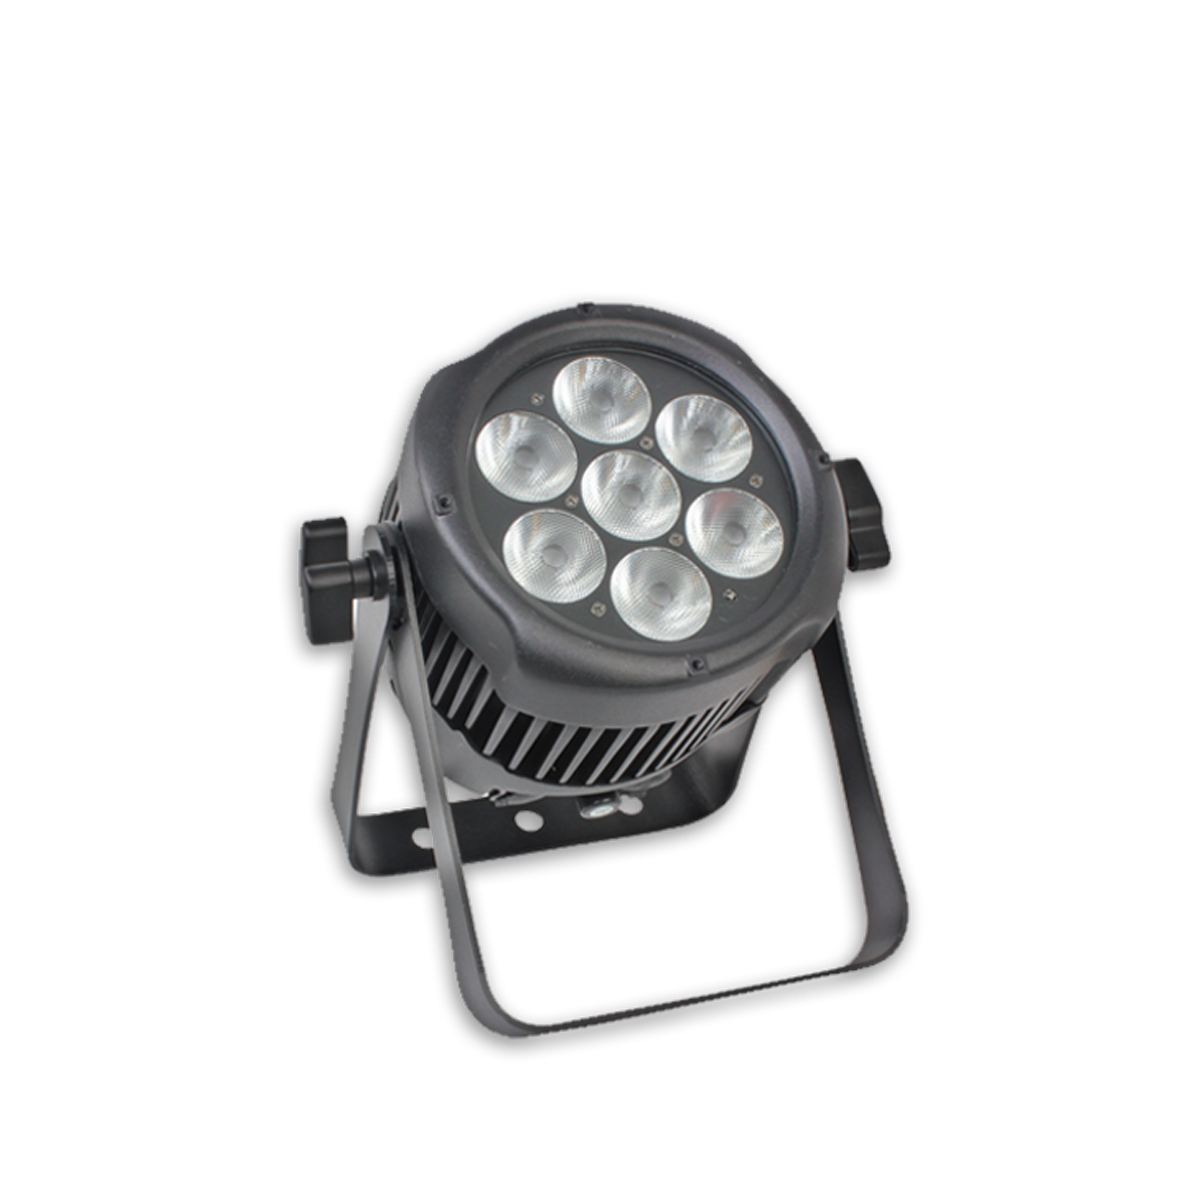 CPX 407BAT - Outdoor battery RGBW LED Par, with wireless DMX